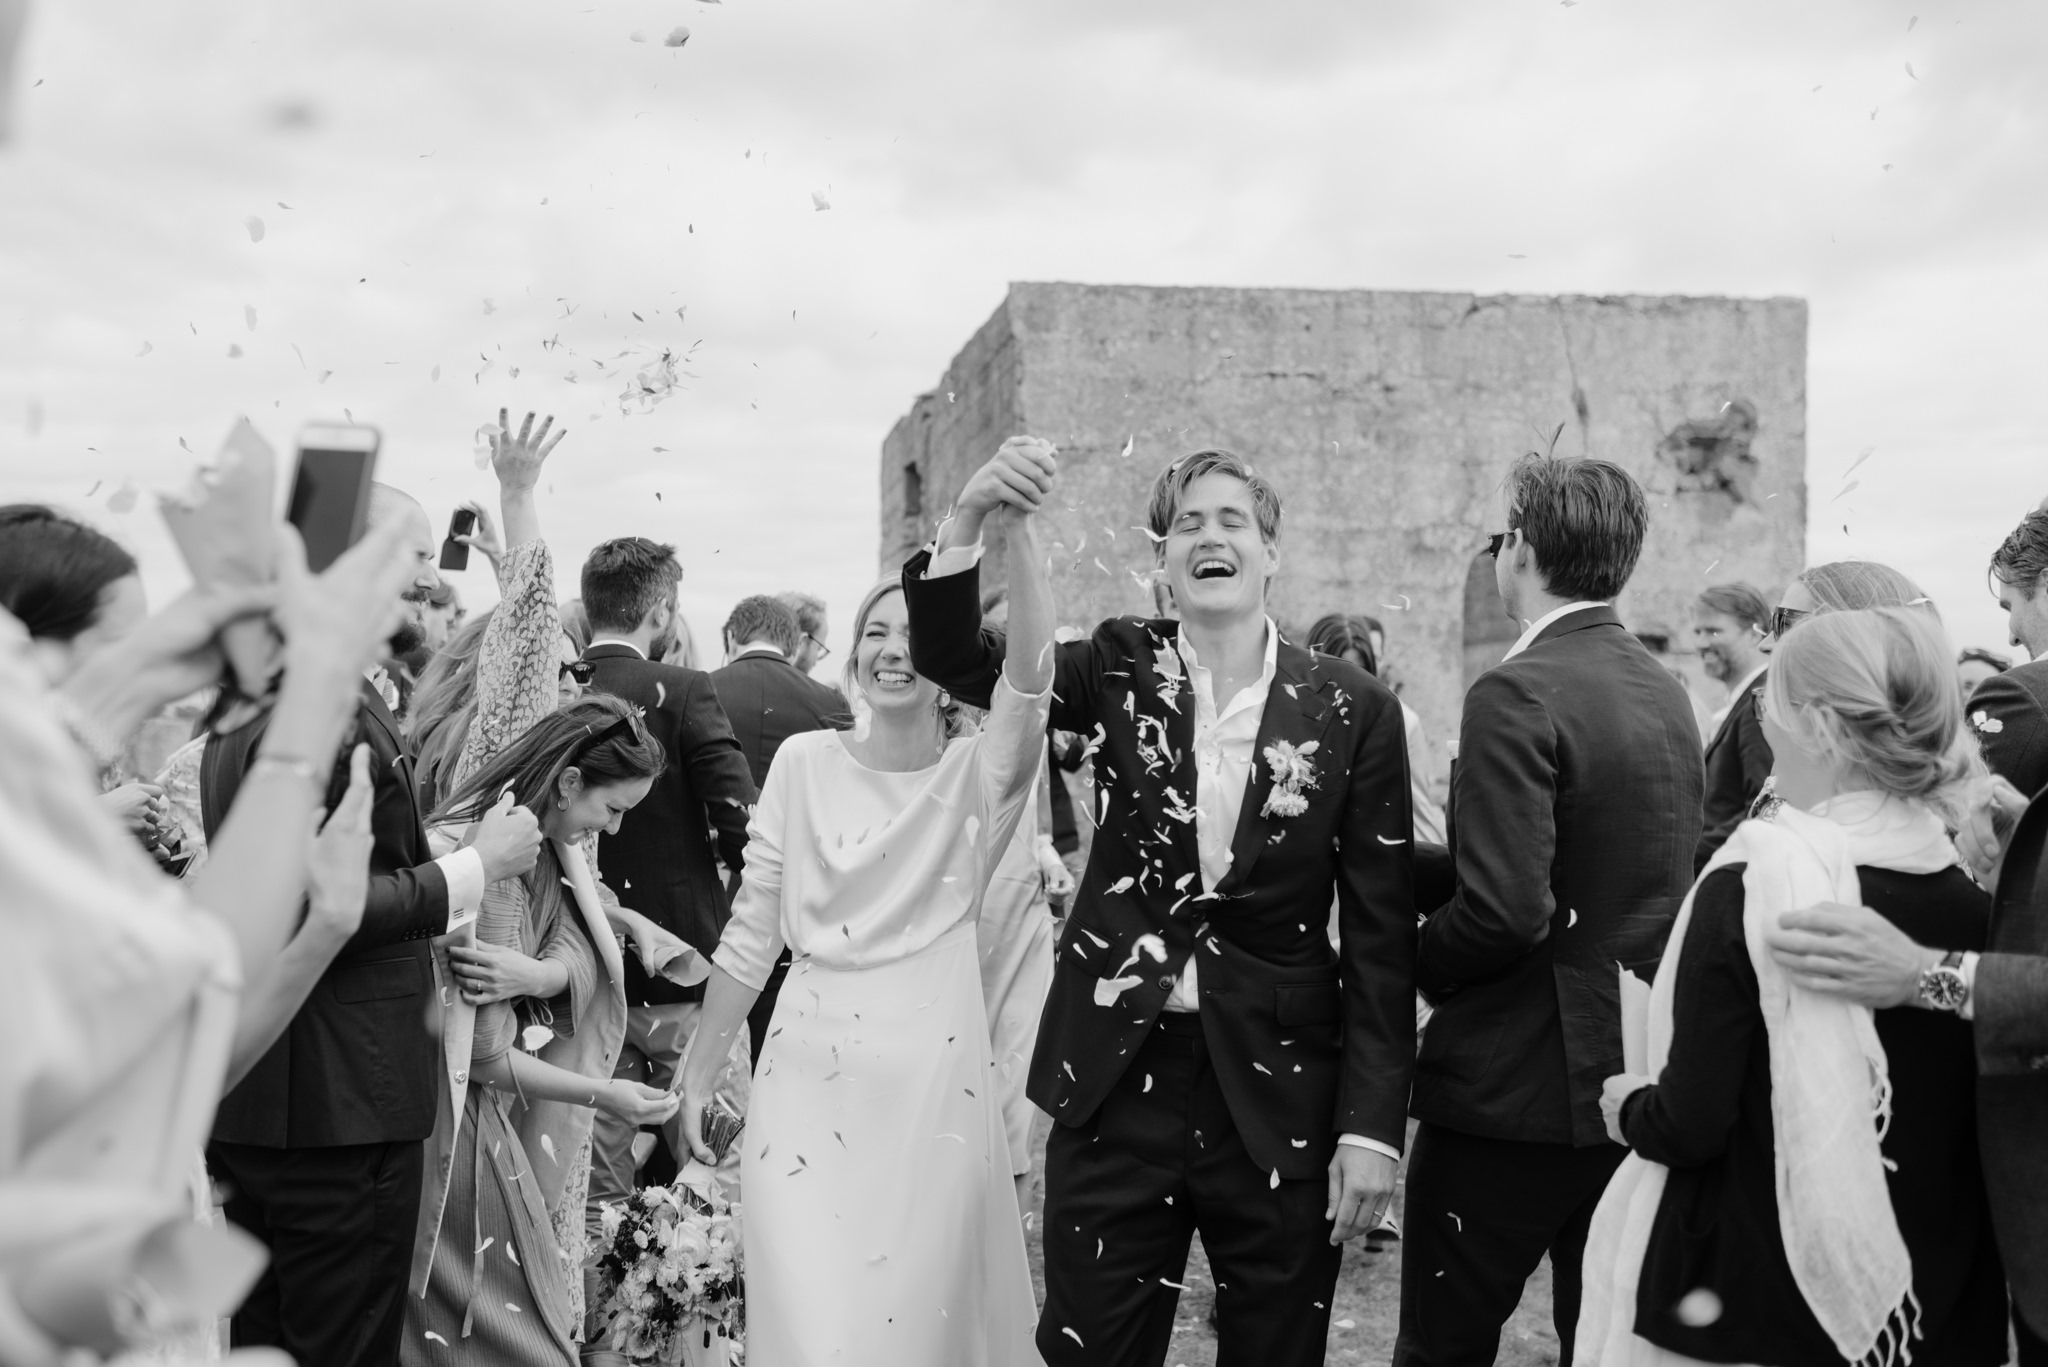 Newlyweds being showered with confetti